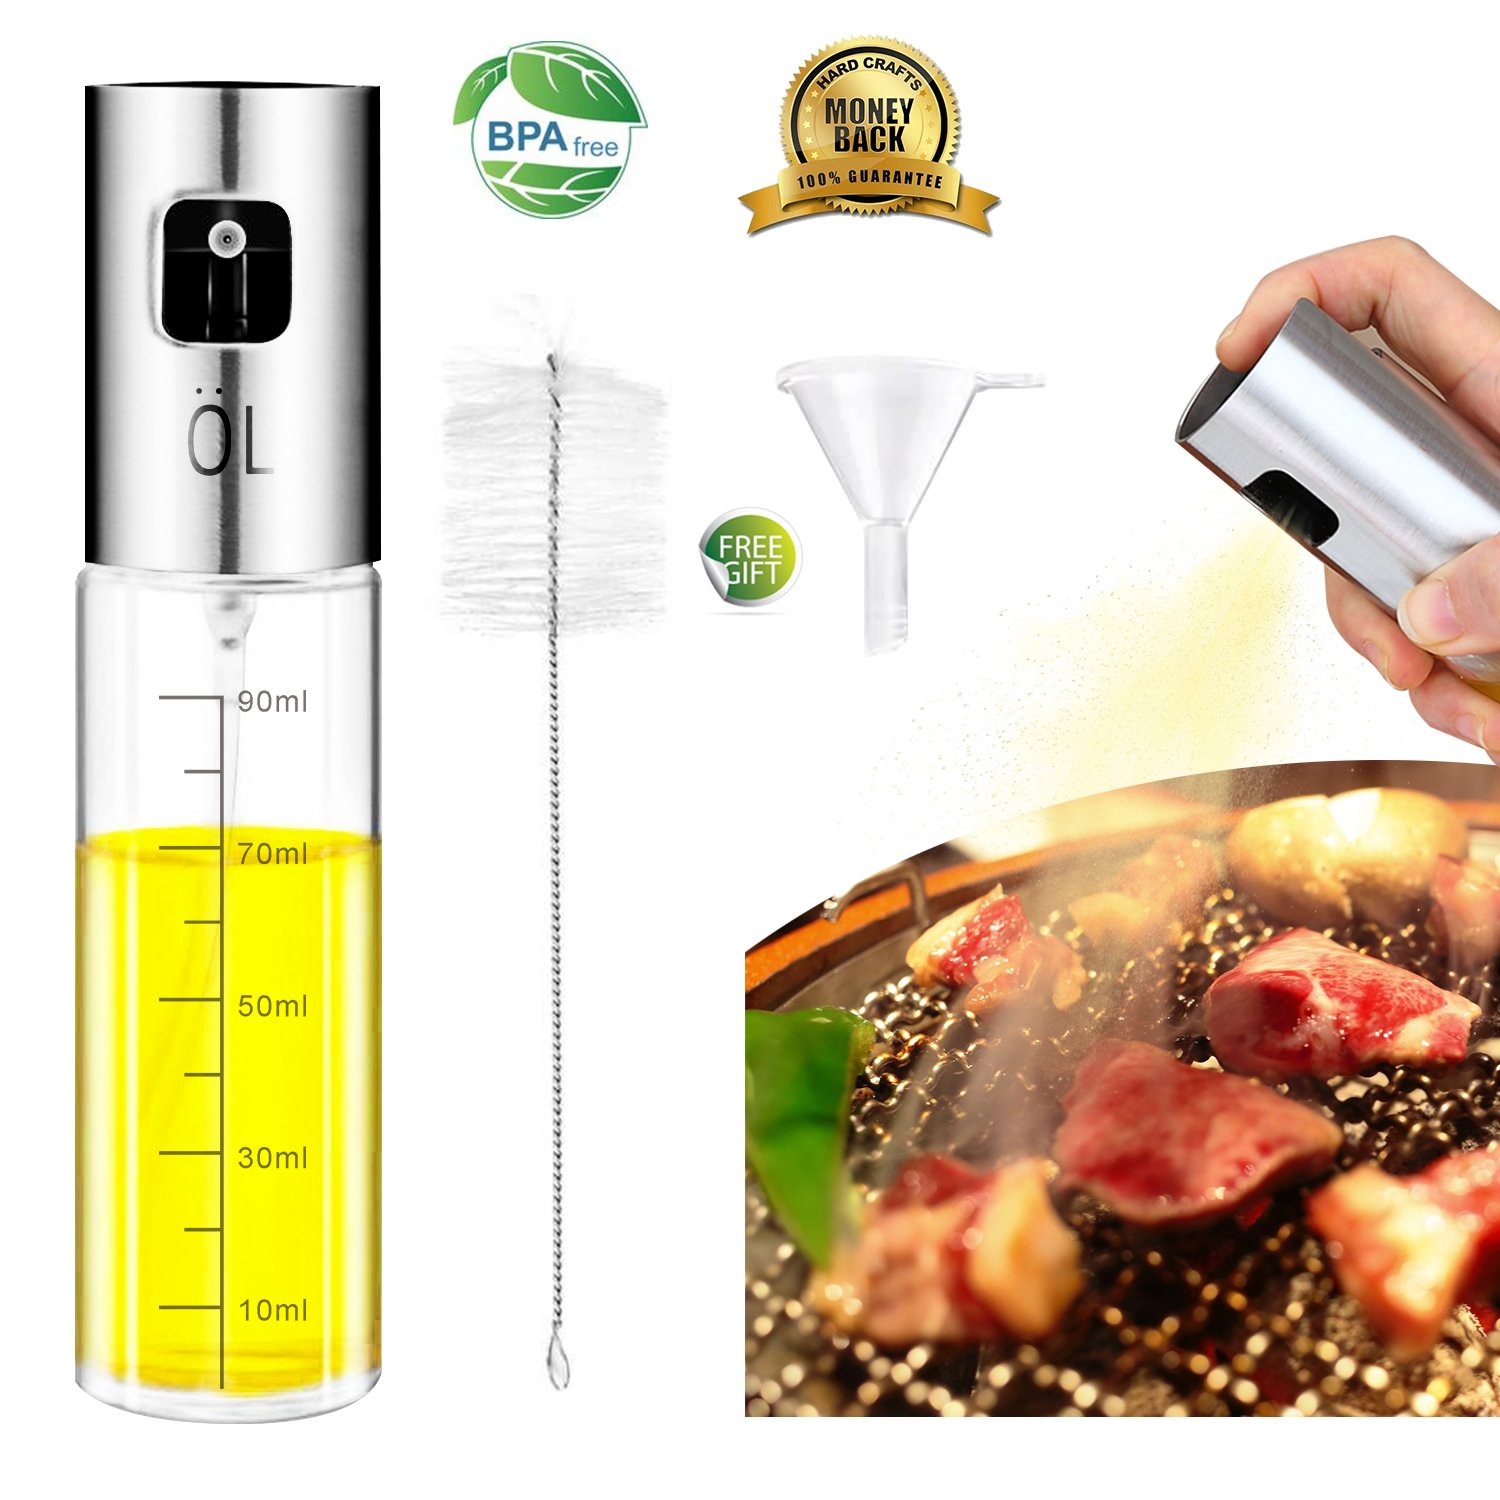 Olive Oil Sprayer, Oil Sprayer for Cooking with Scale, Food-grade Glass Oil Spray Bottle Oil Misters Vinegar Bottle Oil Dispenser for Cooking, Salad, BBQ, Kitchen Baking, Roasting